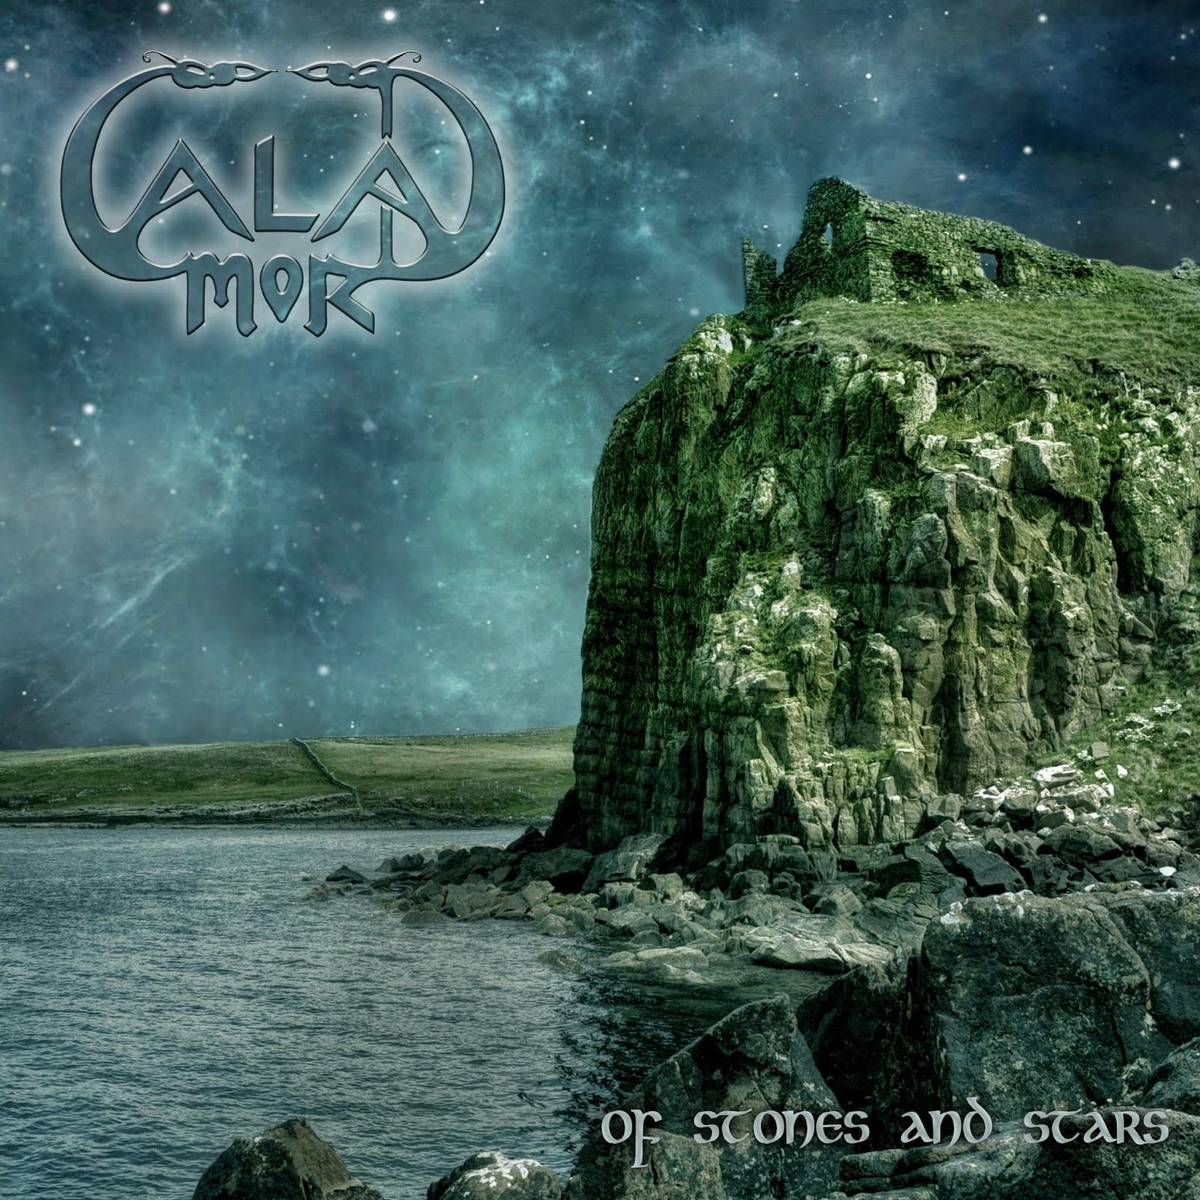 Caladmor - Of Stones and Stars